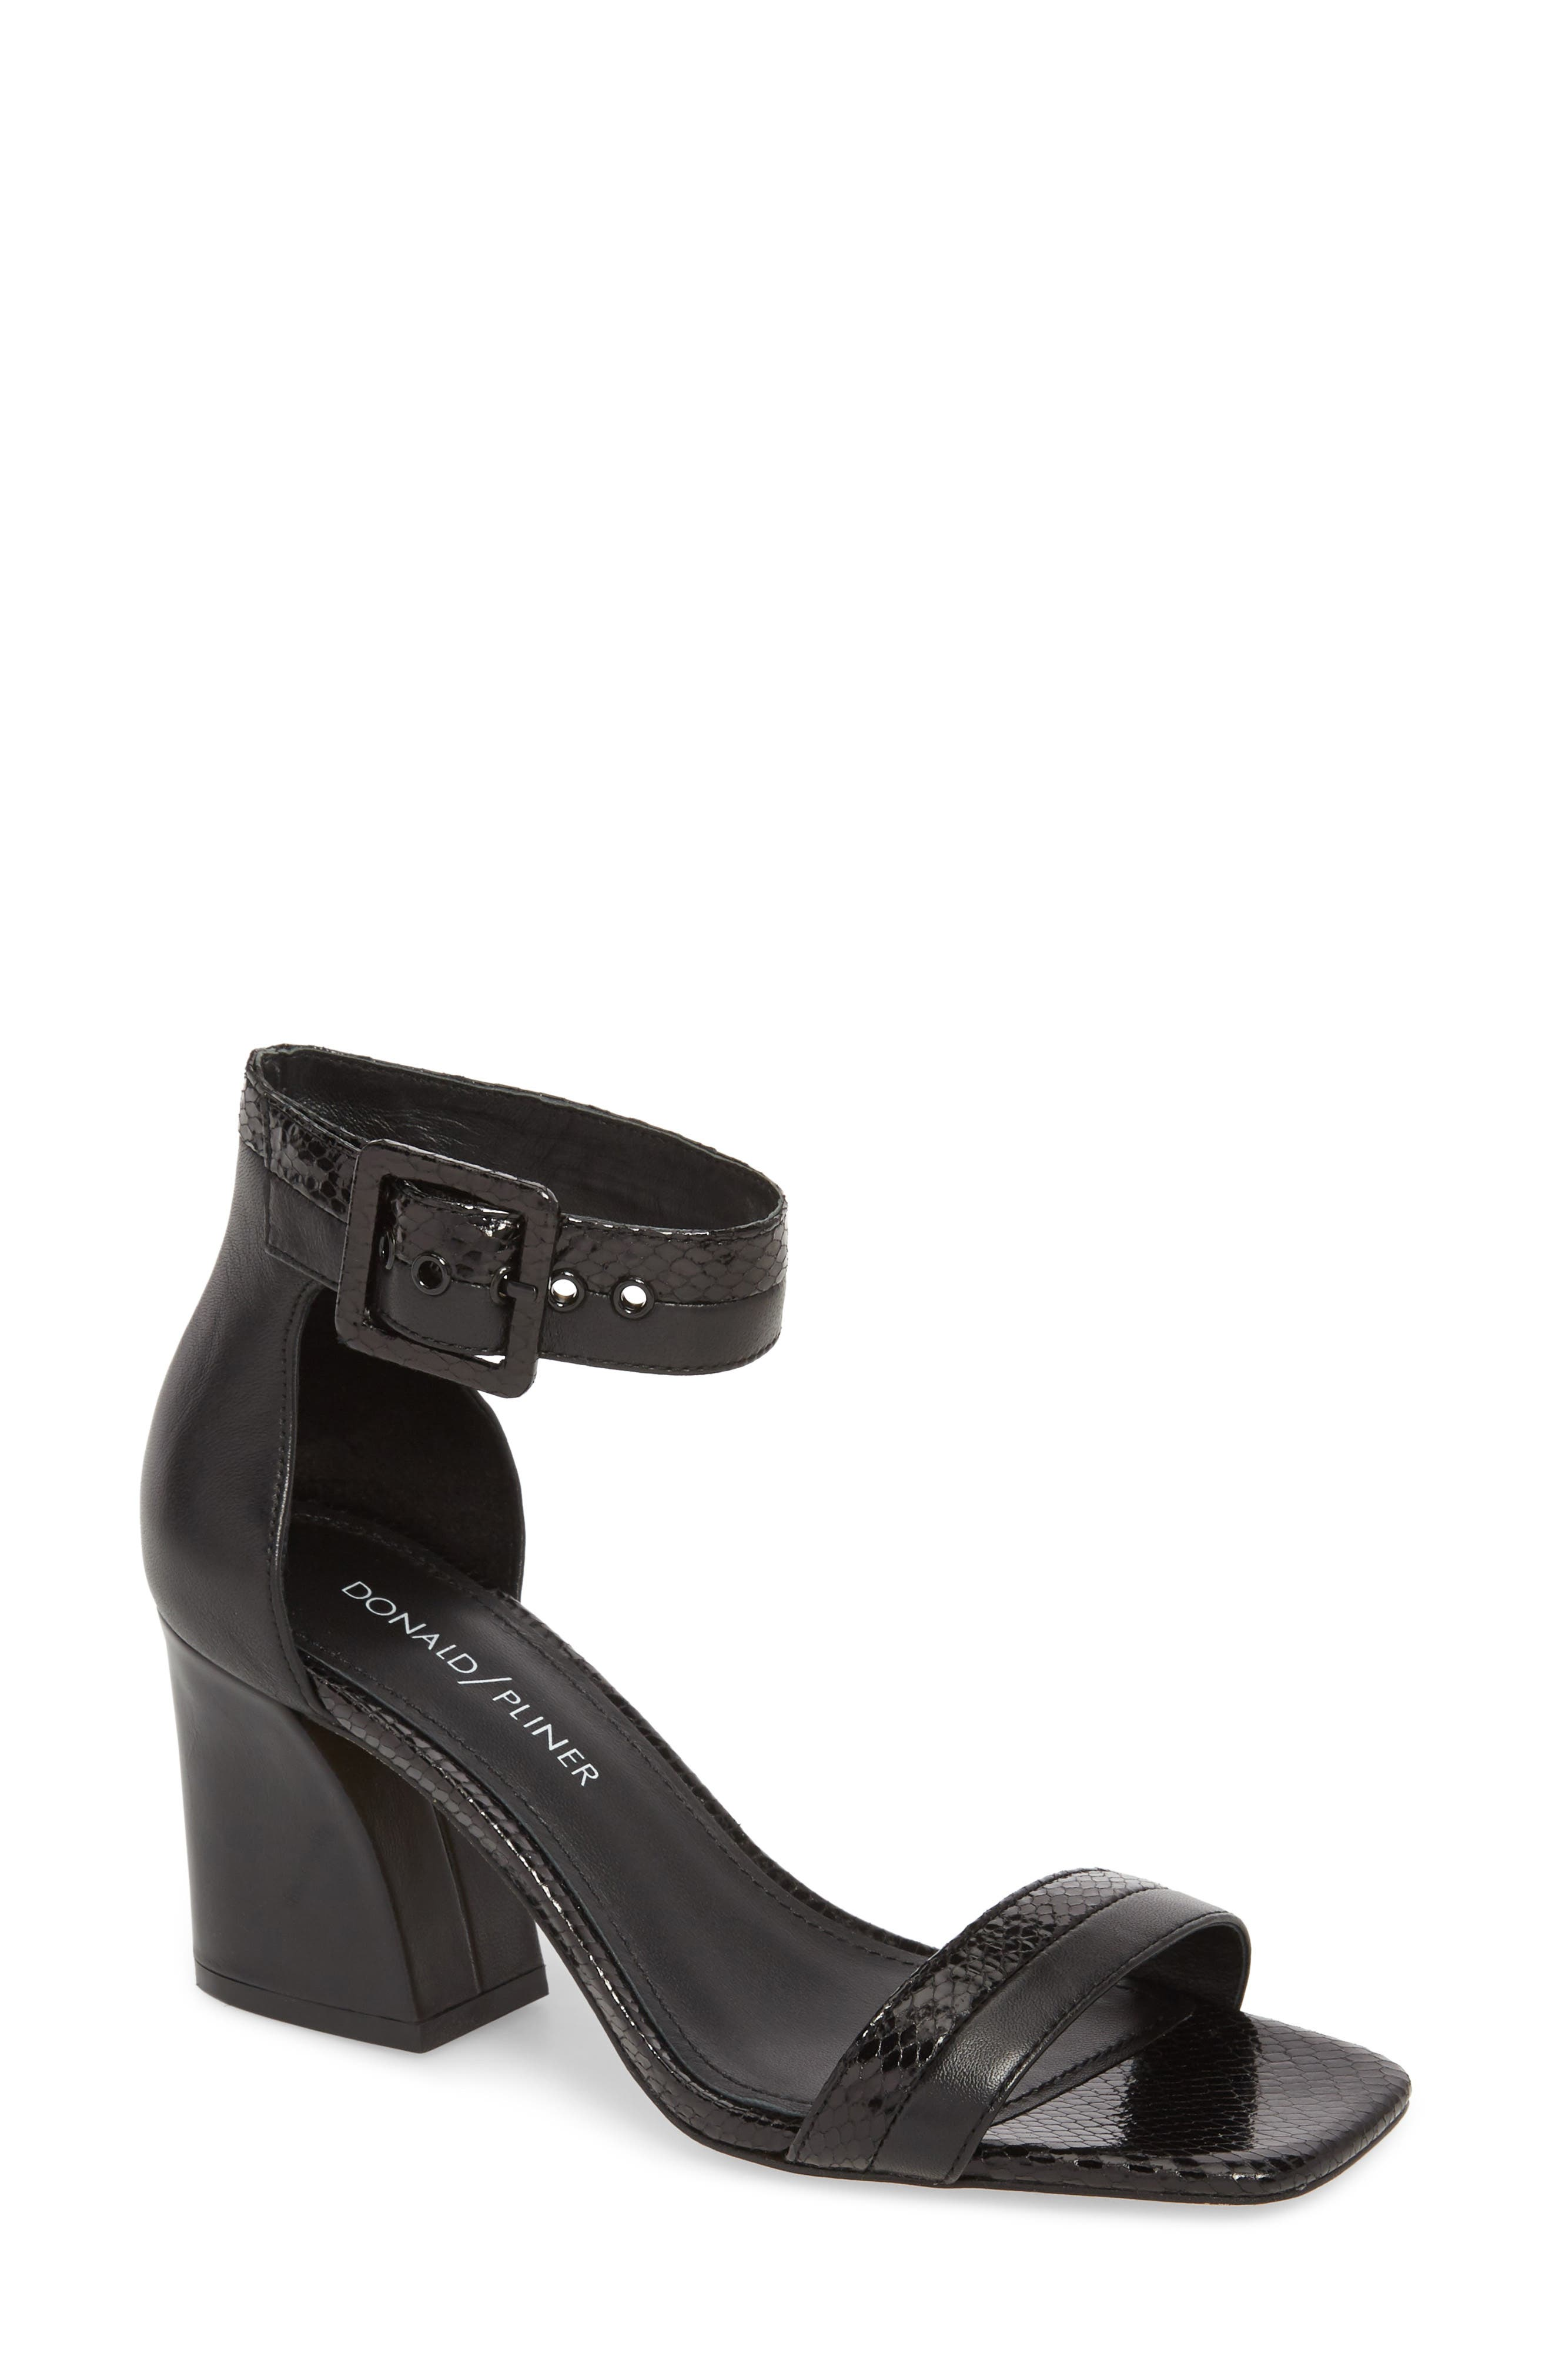 Watson Ankle Strap Sandal,                         Main,                         color, BLACK PRINTED LEATHER